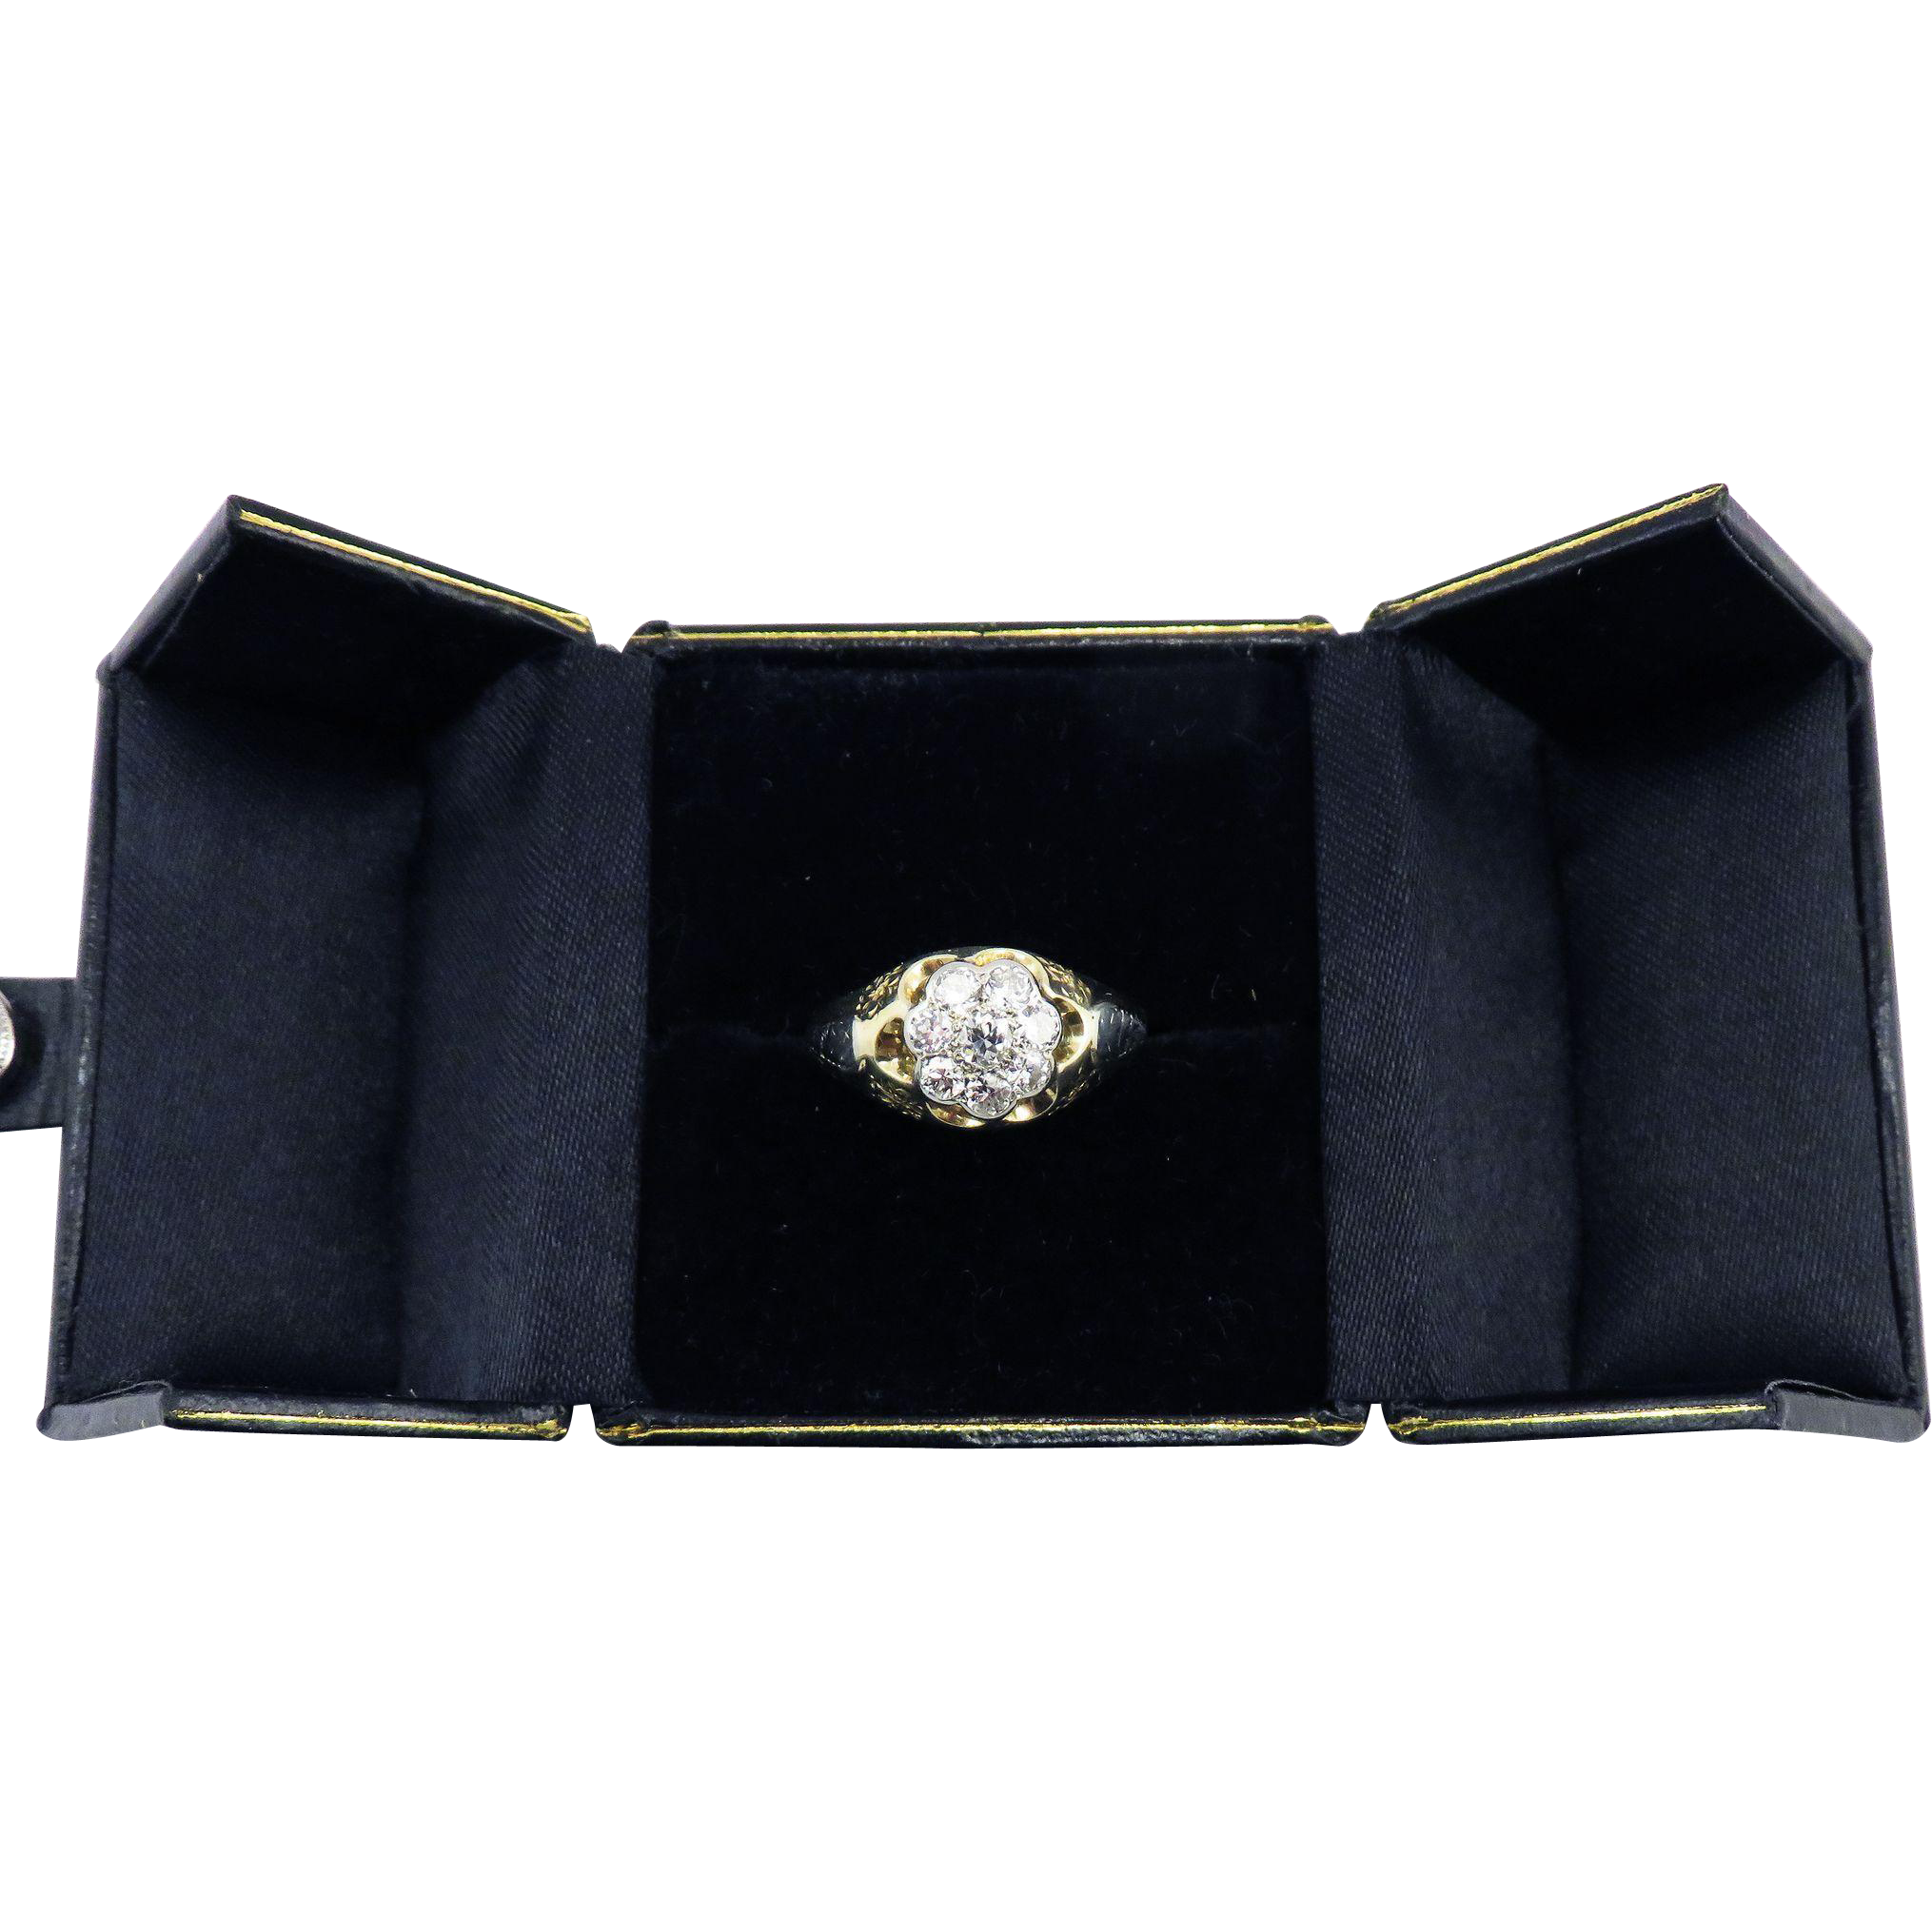 GORGEOUS Unisex 1.25 Ct. OEC TW Edwardian Diamond Cluster Ring in Sterling & 14k Gold, 5.89 Grams, c.1910!